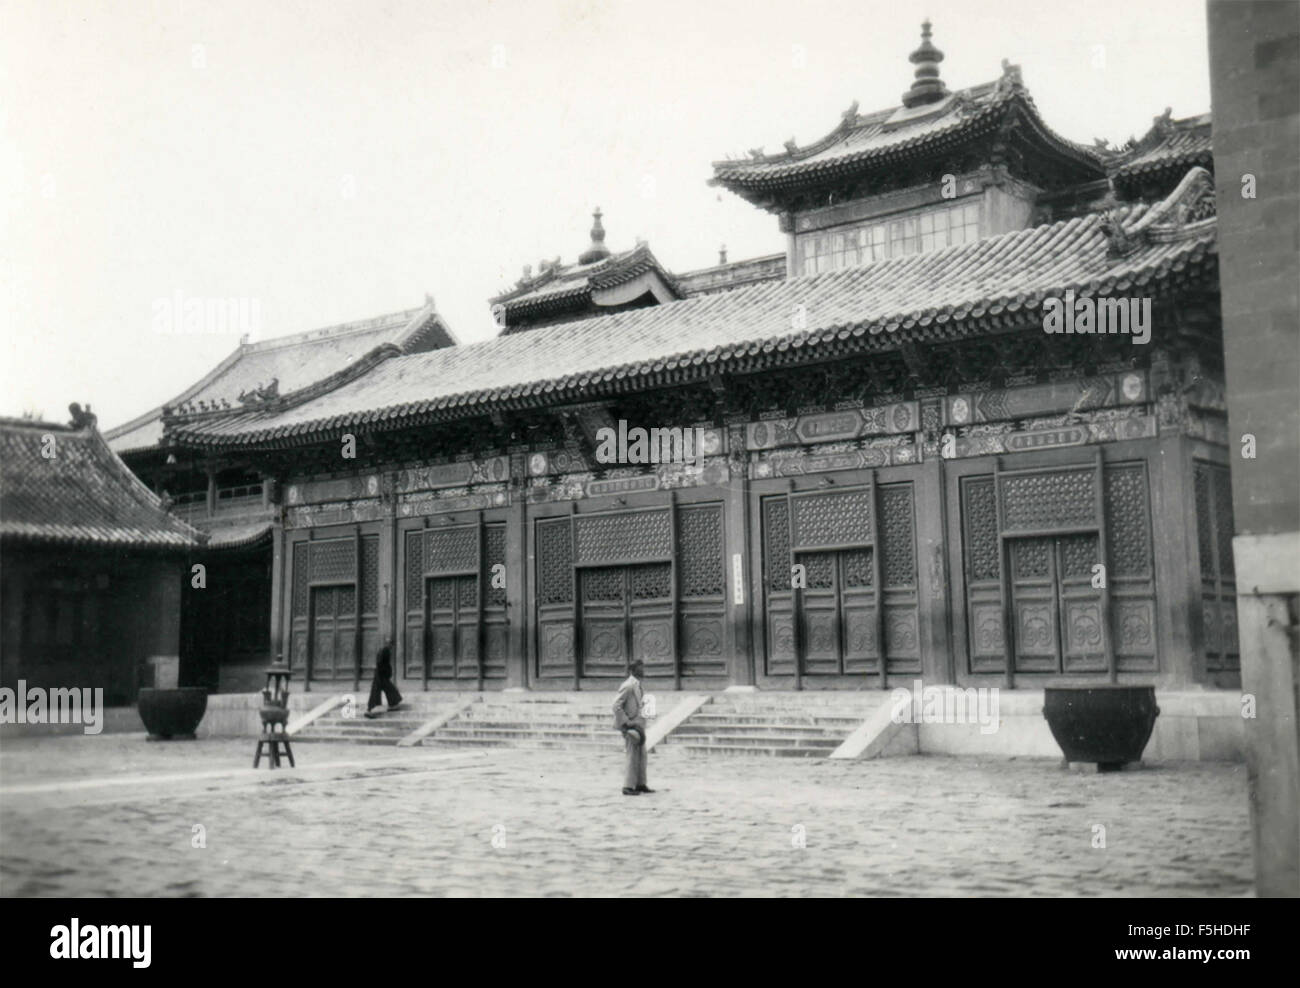 In one of the courtyards of the Lama Temple, Beijing, China - Stock Image